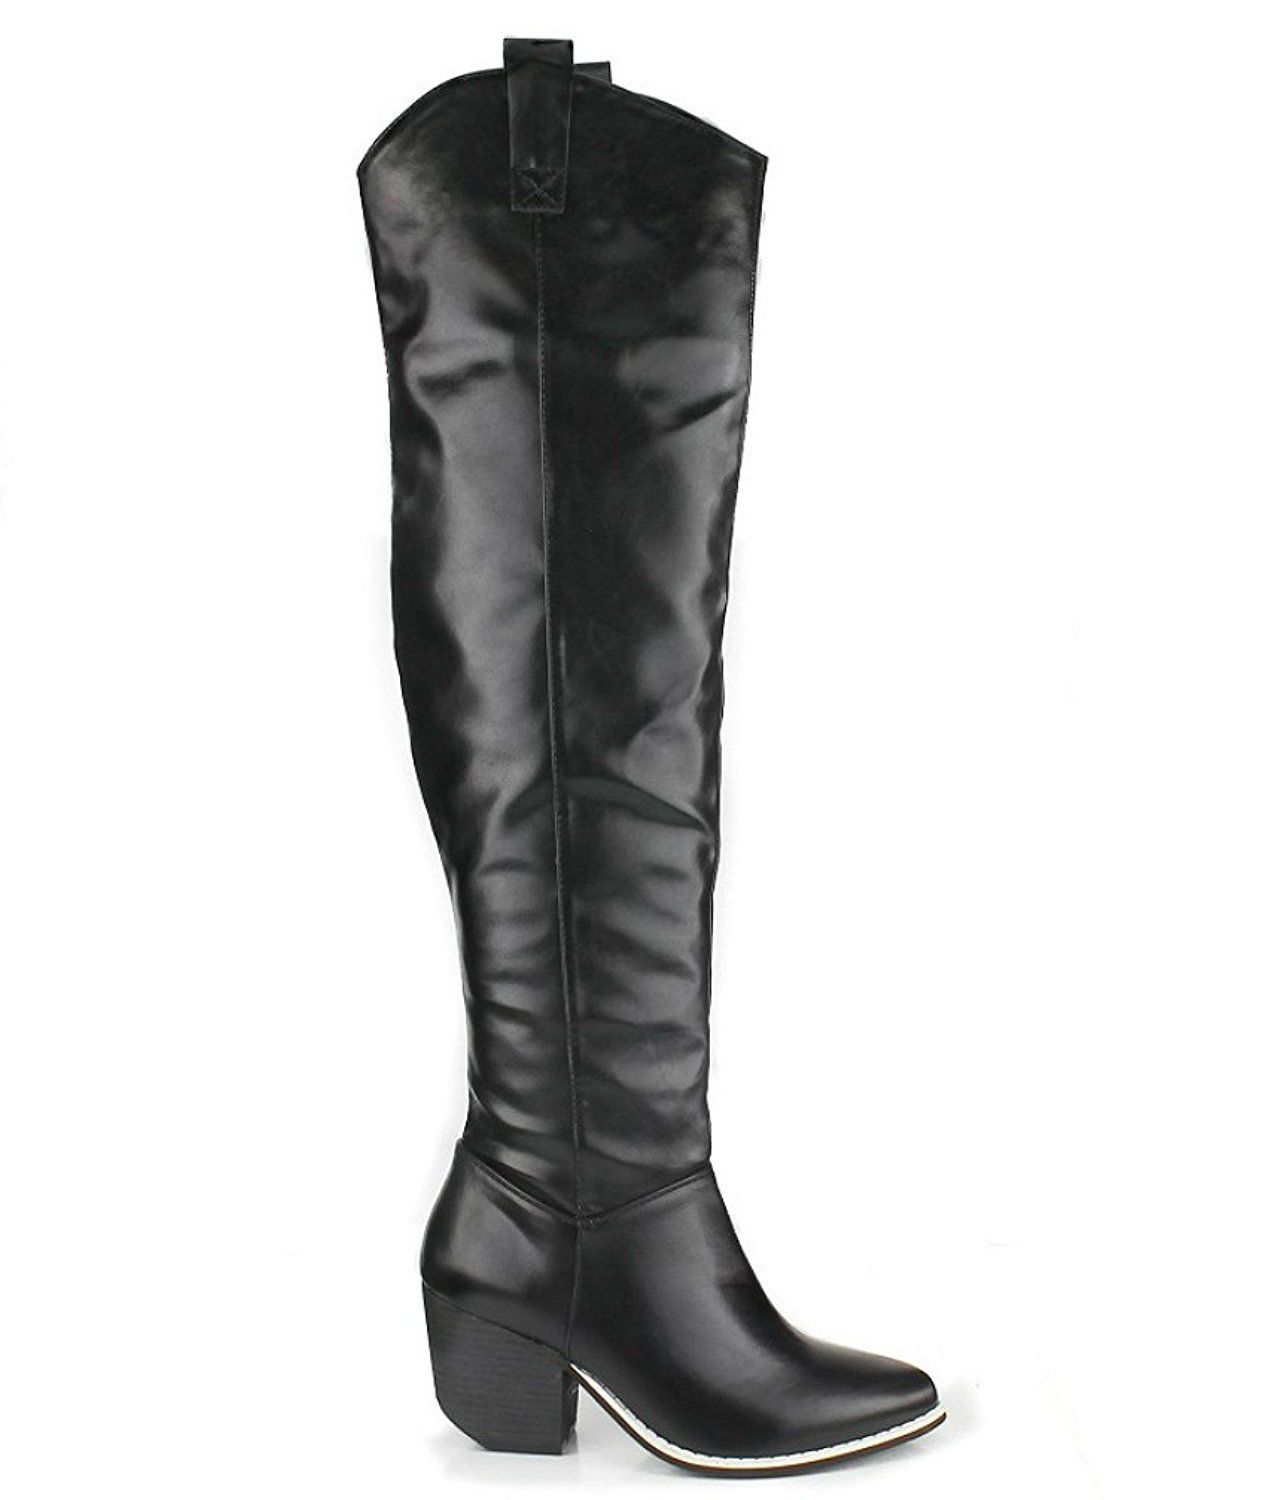 d933b1f4fe7 Thigh High Western Cowboy Boots Women's shoes *** This is an Amazon ...